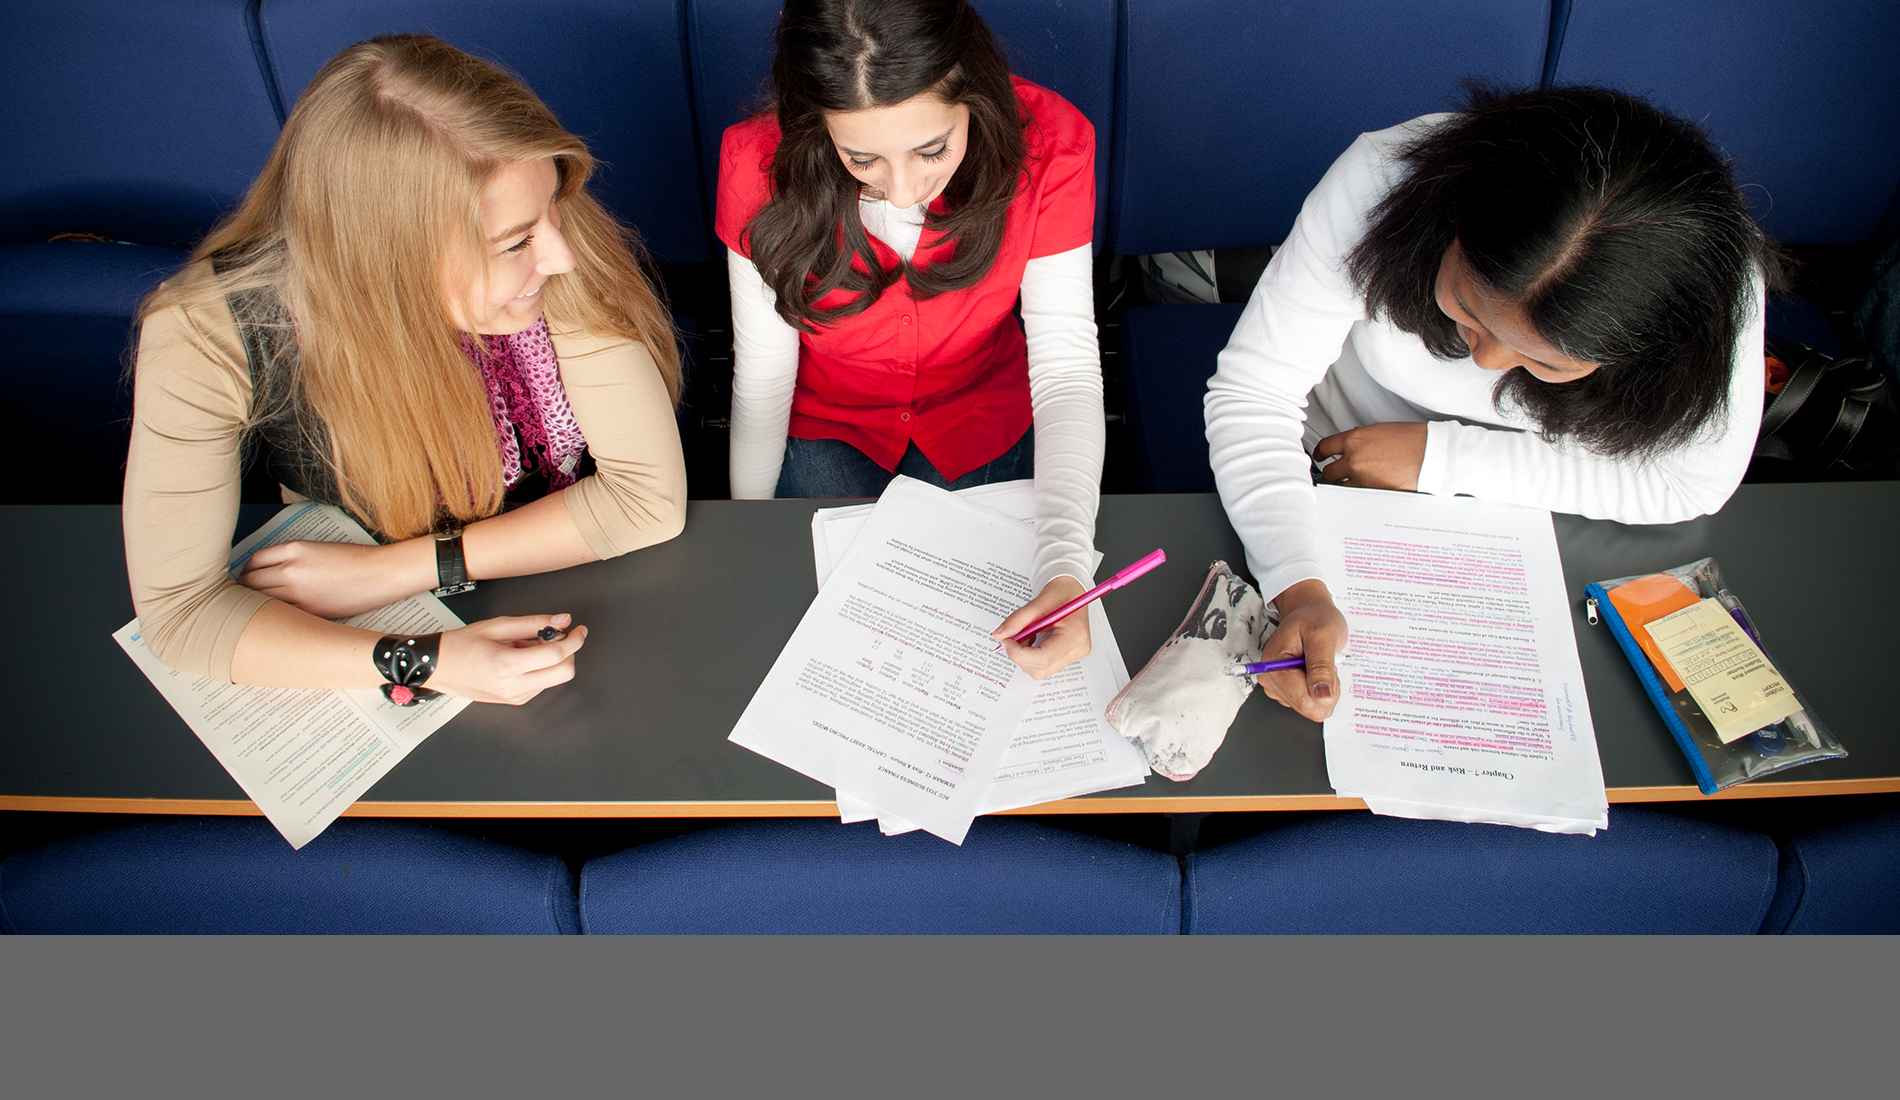 Creative writing service university courses uk